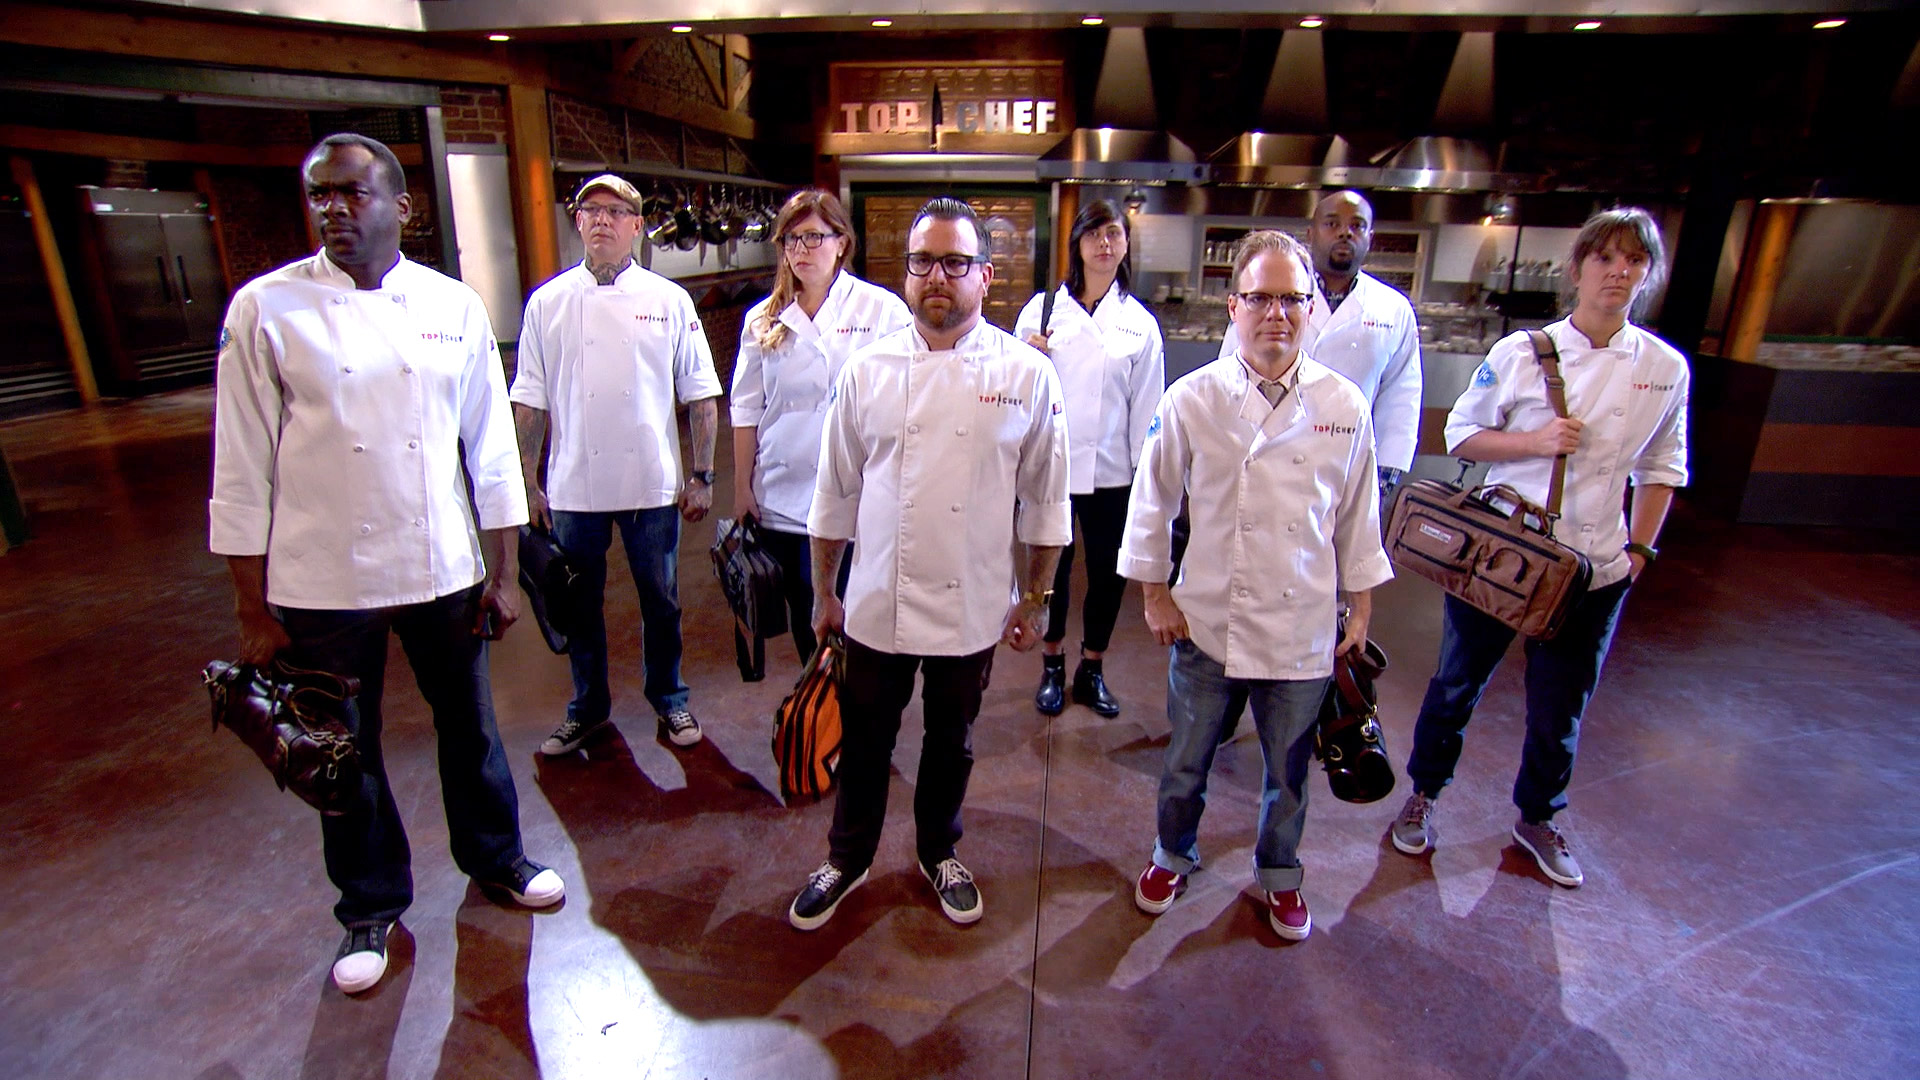 Introducing Top Chef Season 14's Rookie Chefs